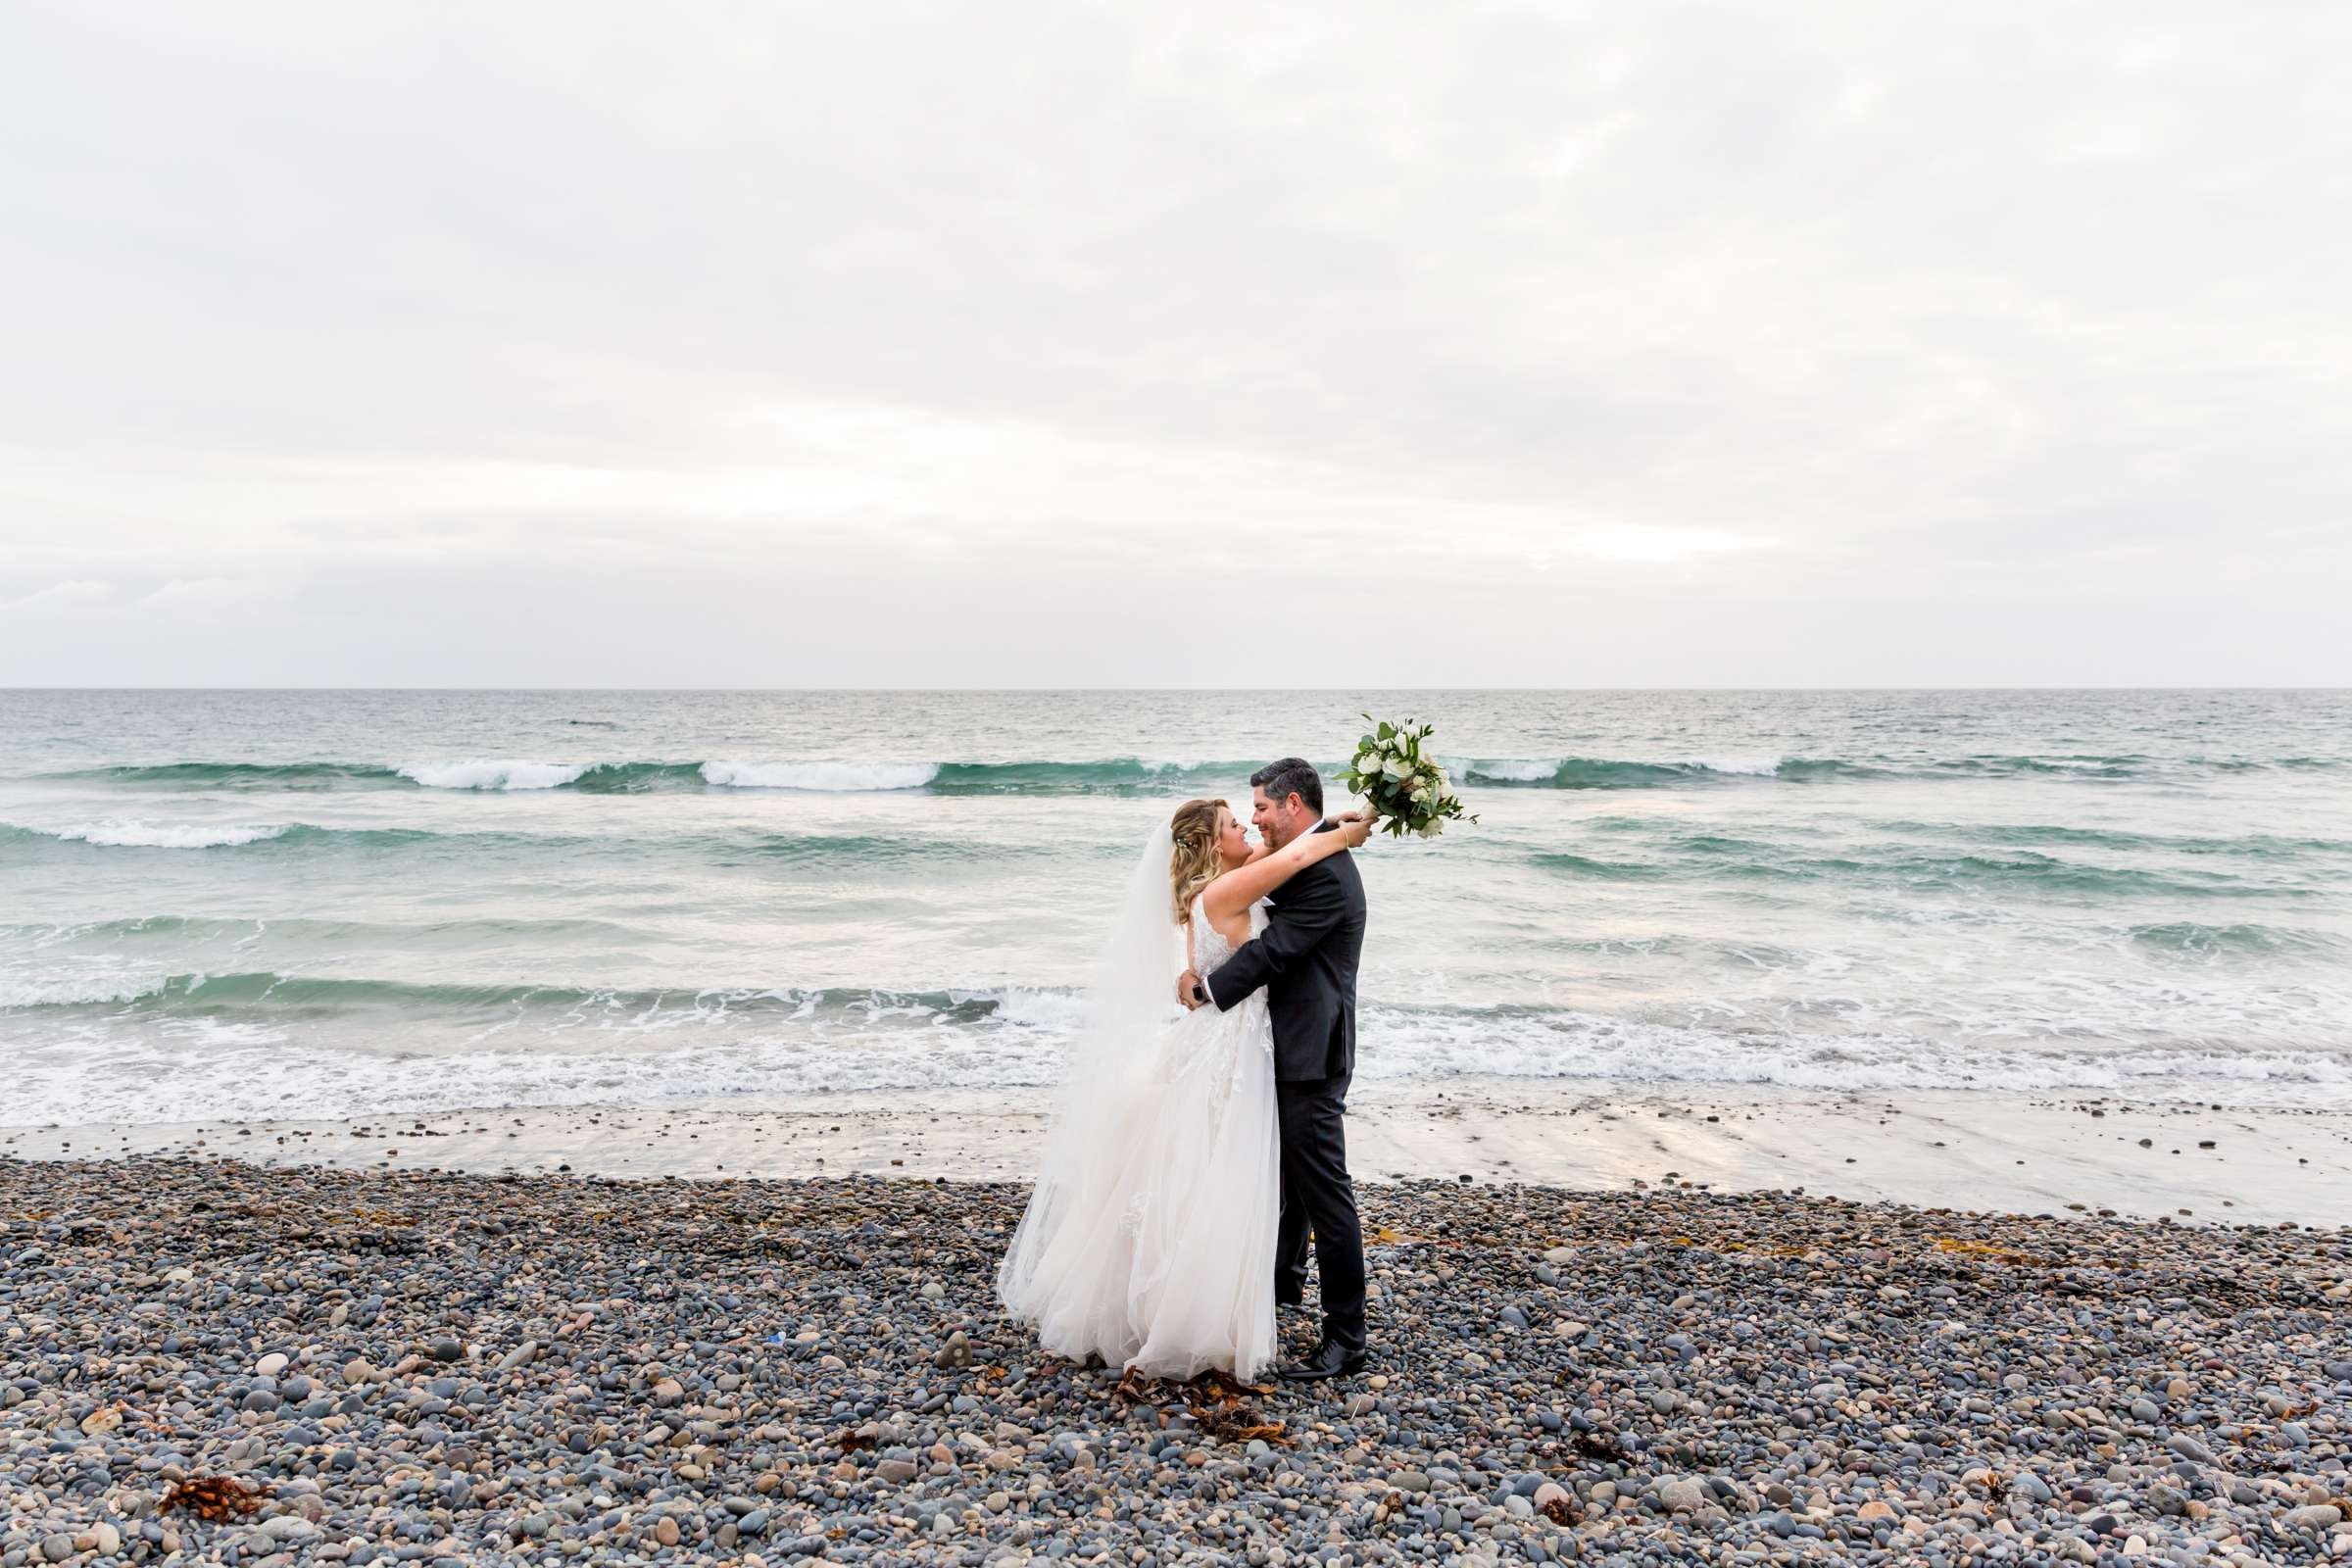 Cape Rey Carlsbad, A Hilton Resort Wedding, Michelle and Justin Wedding Photo #2 by True Photography